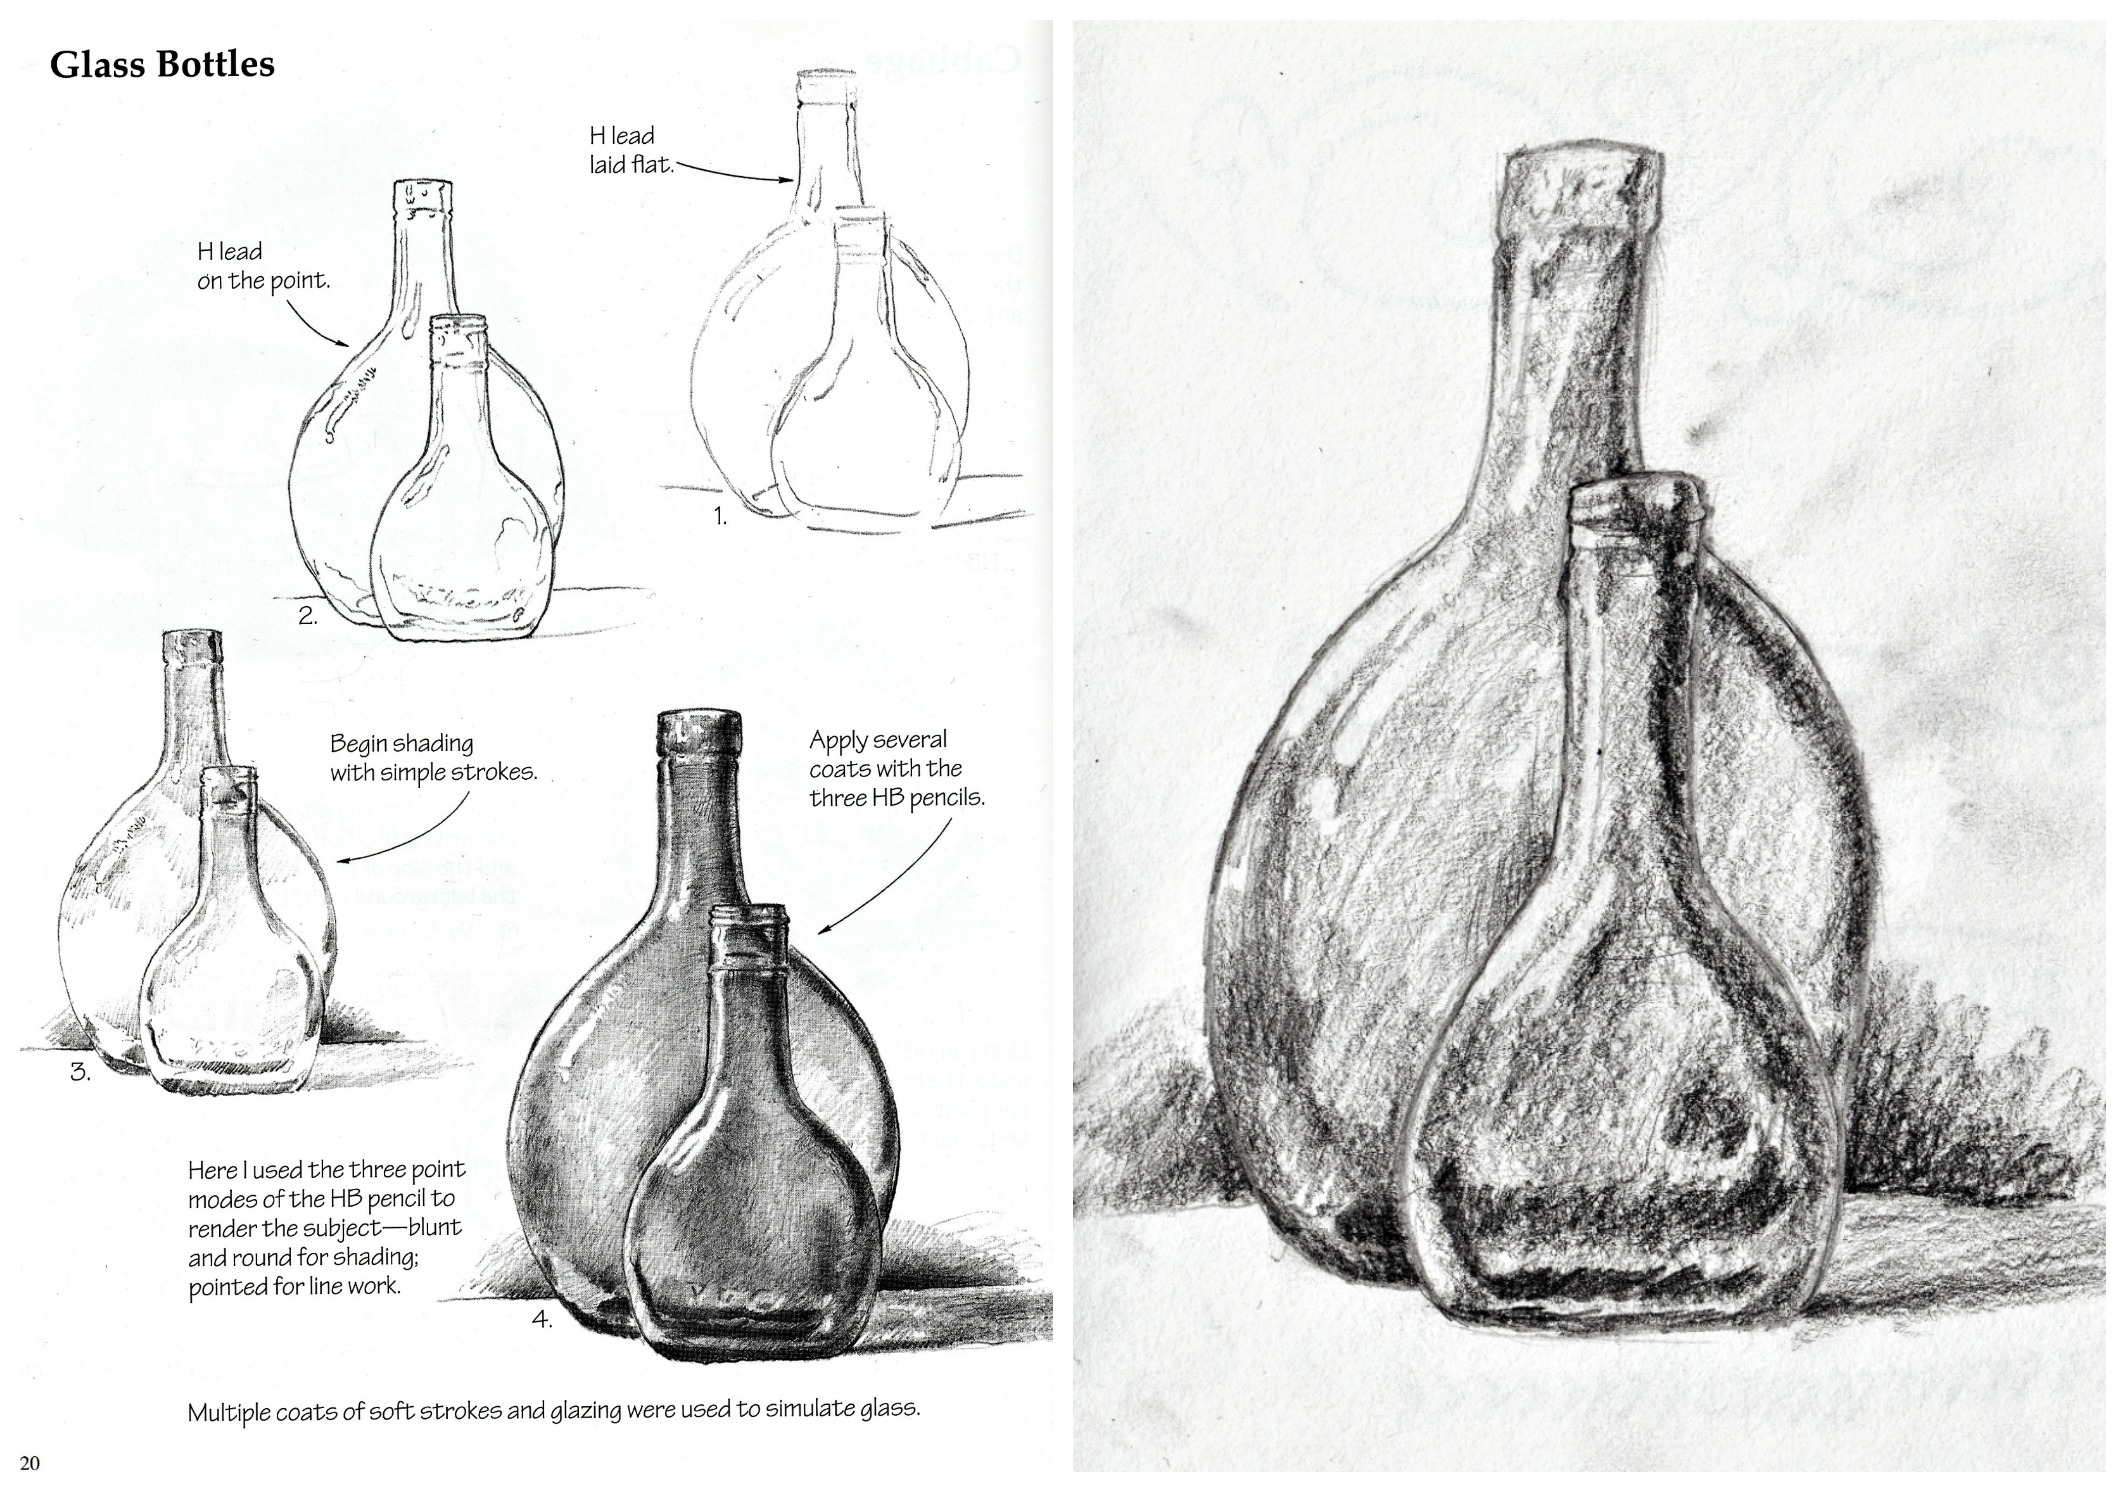 Art of franks bottles vs mine